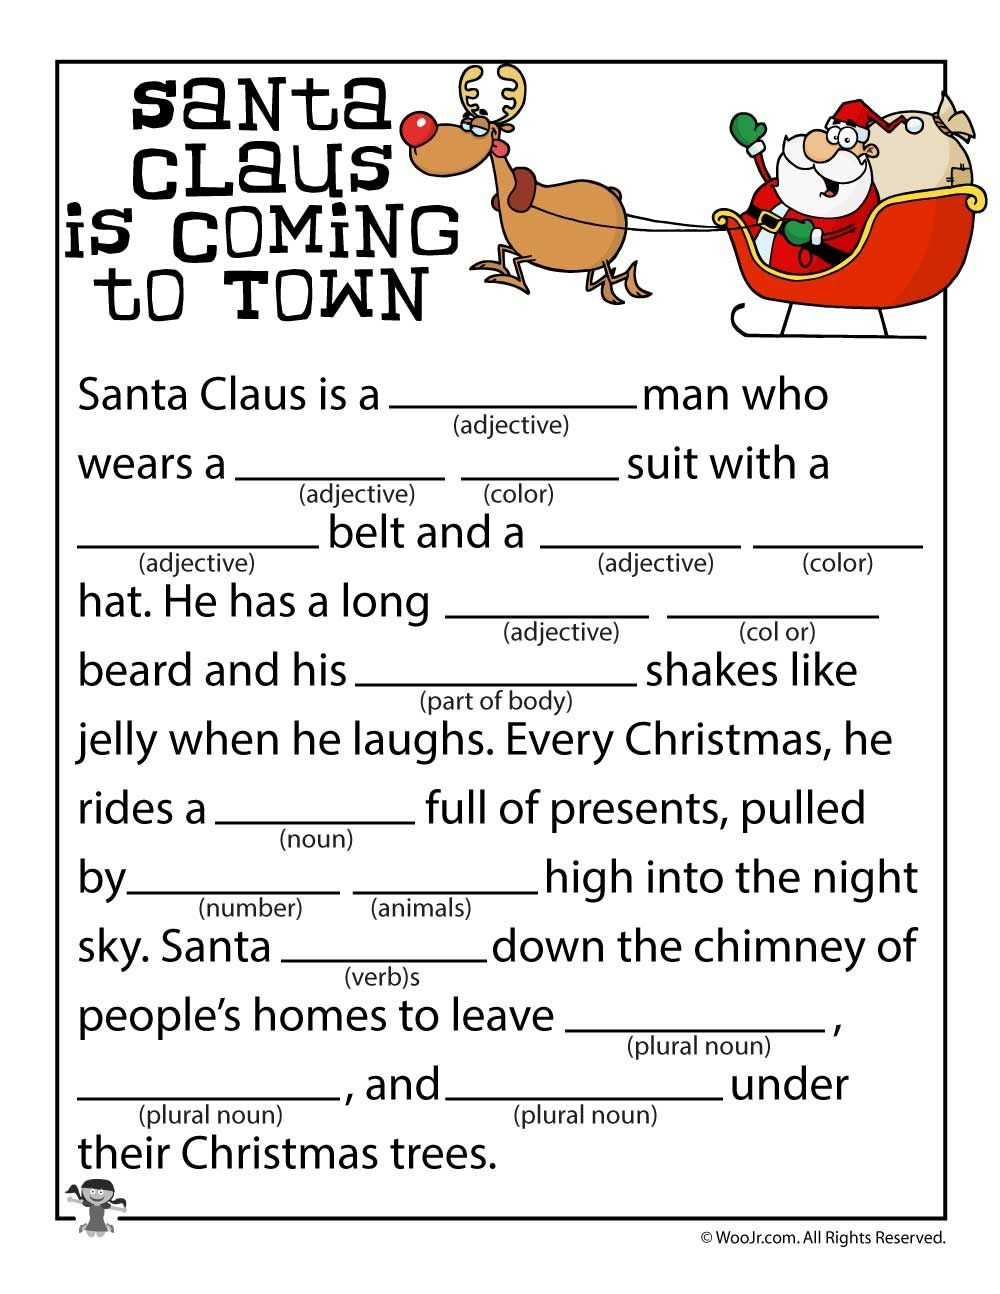 Santa Claus Is Coming To Town Mad Libs | Grandkids | Christmas - Christmas Mad Libs Printable Free